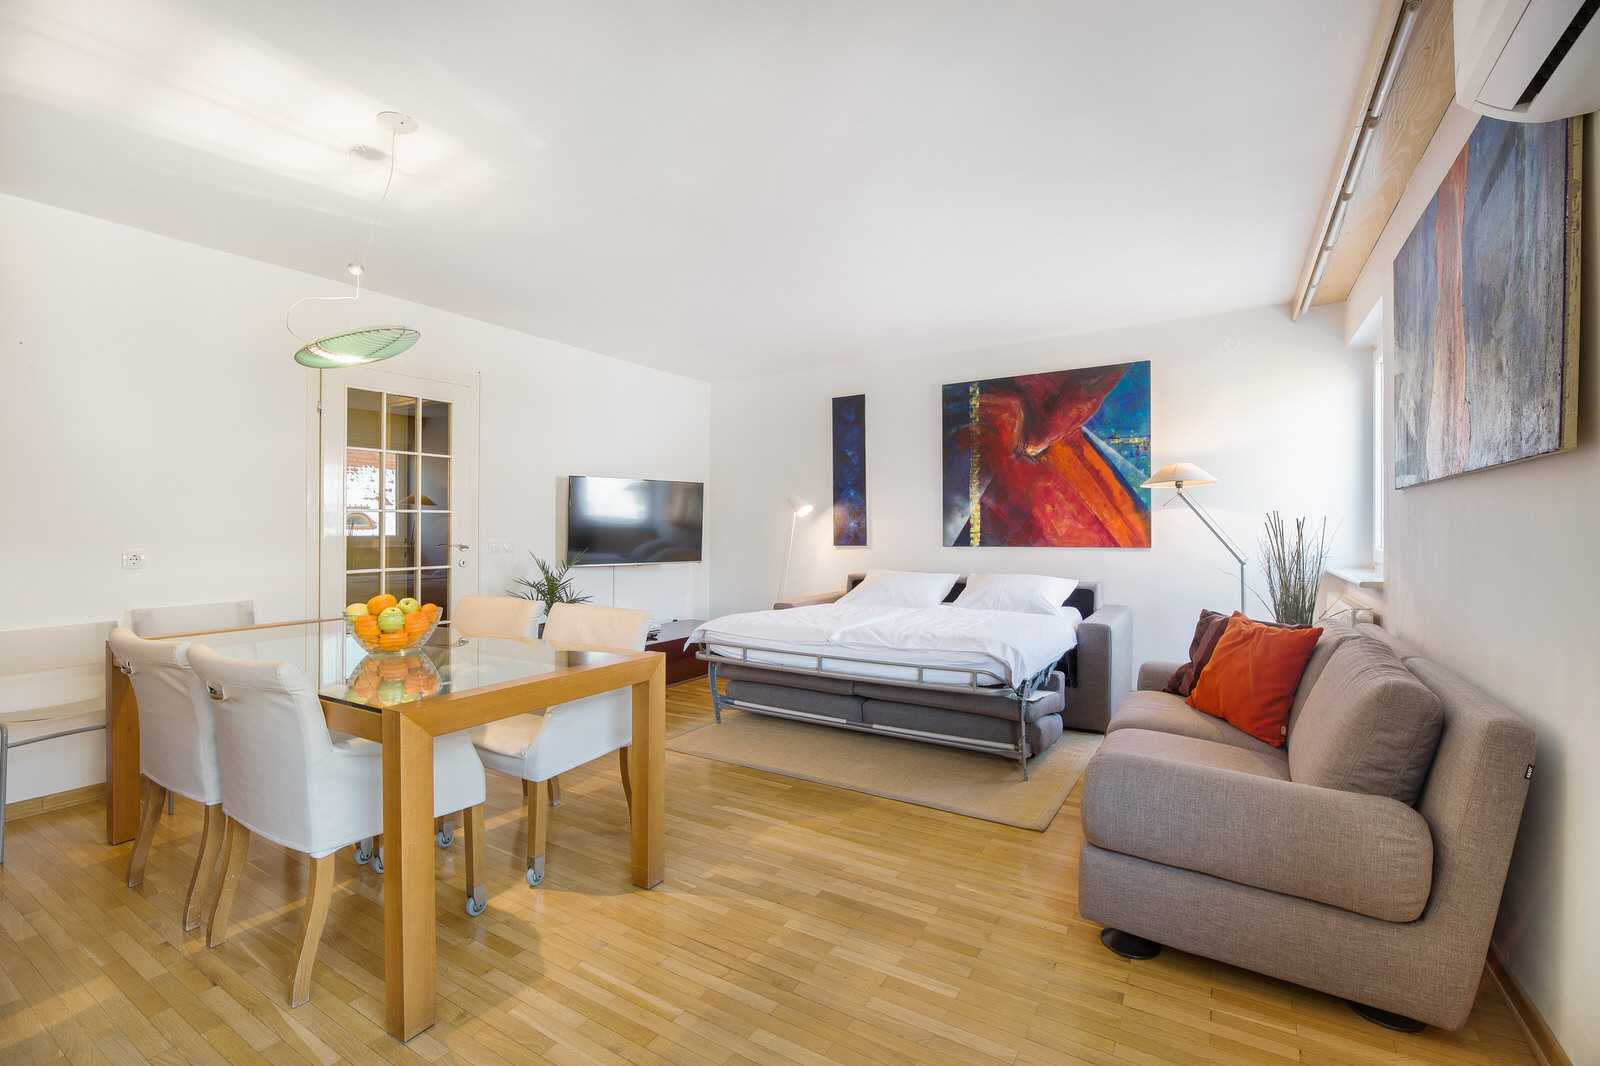 Ljubljana rental apartment Dalmatinova - streched sofa bed with a real mattress for comfortable sleep.